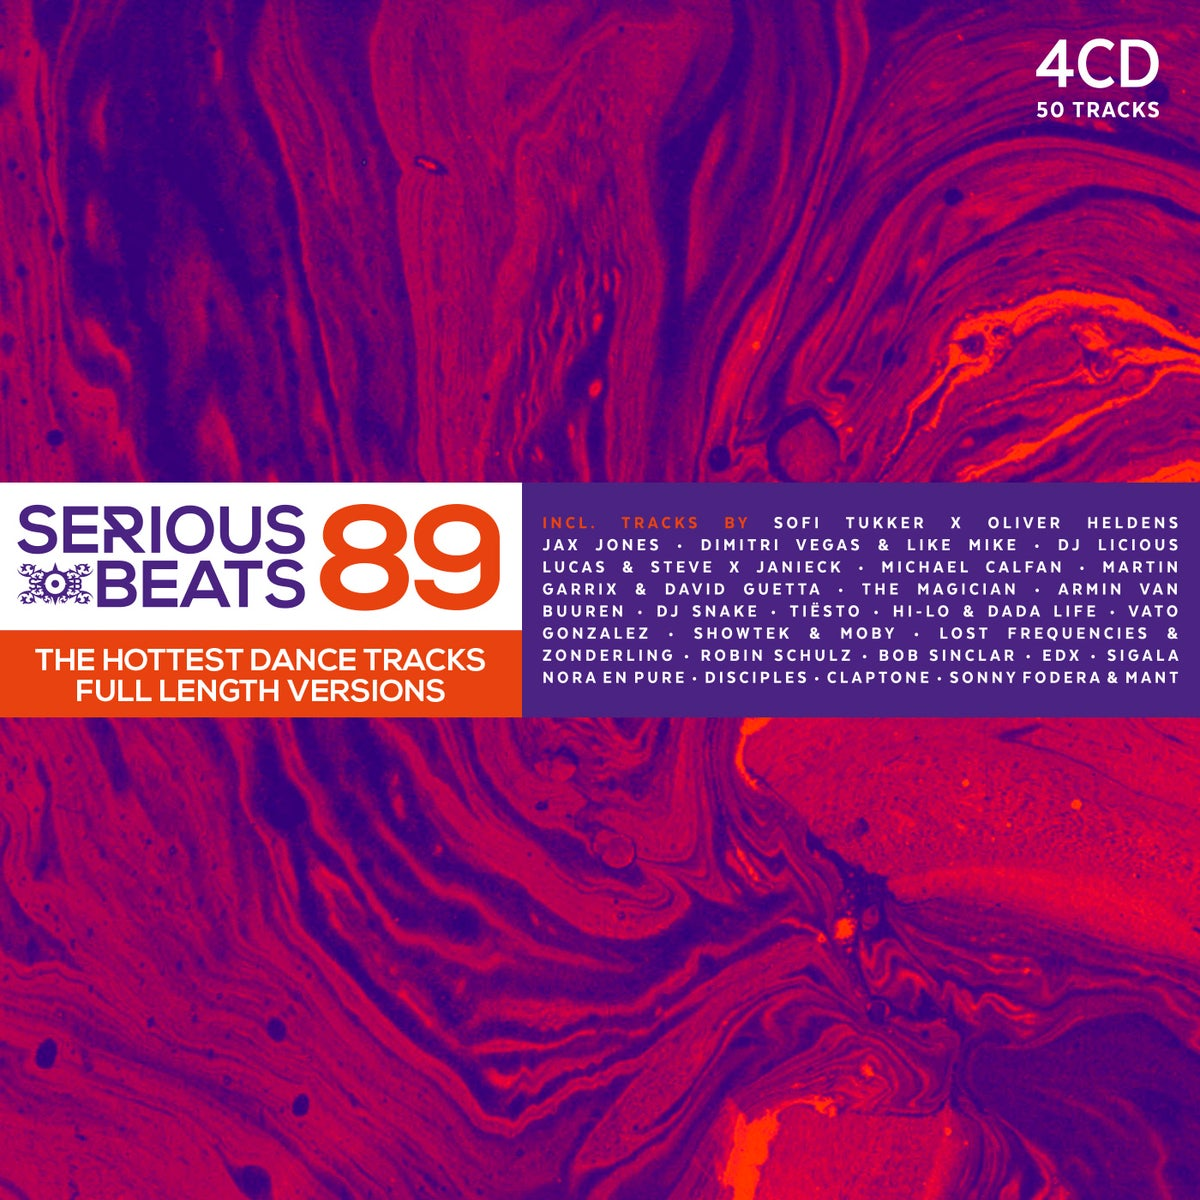 Image of VARIOUS ARTISTS - SERIOUS BEATS 89 (4CD)